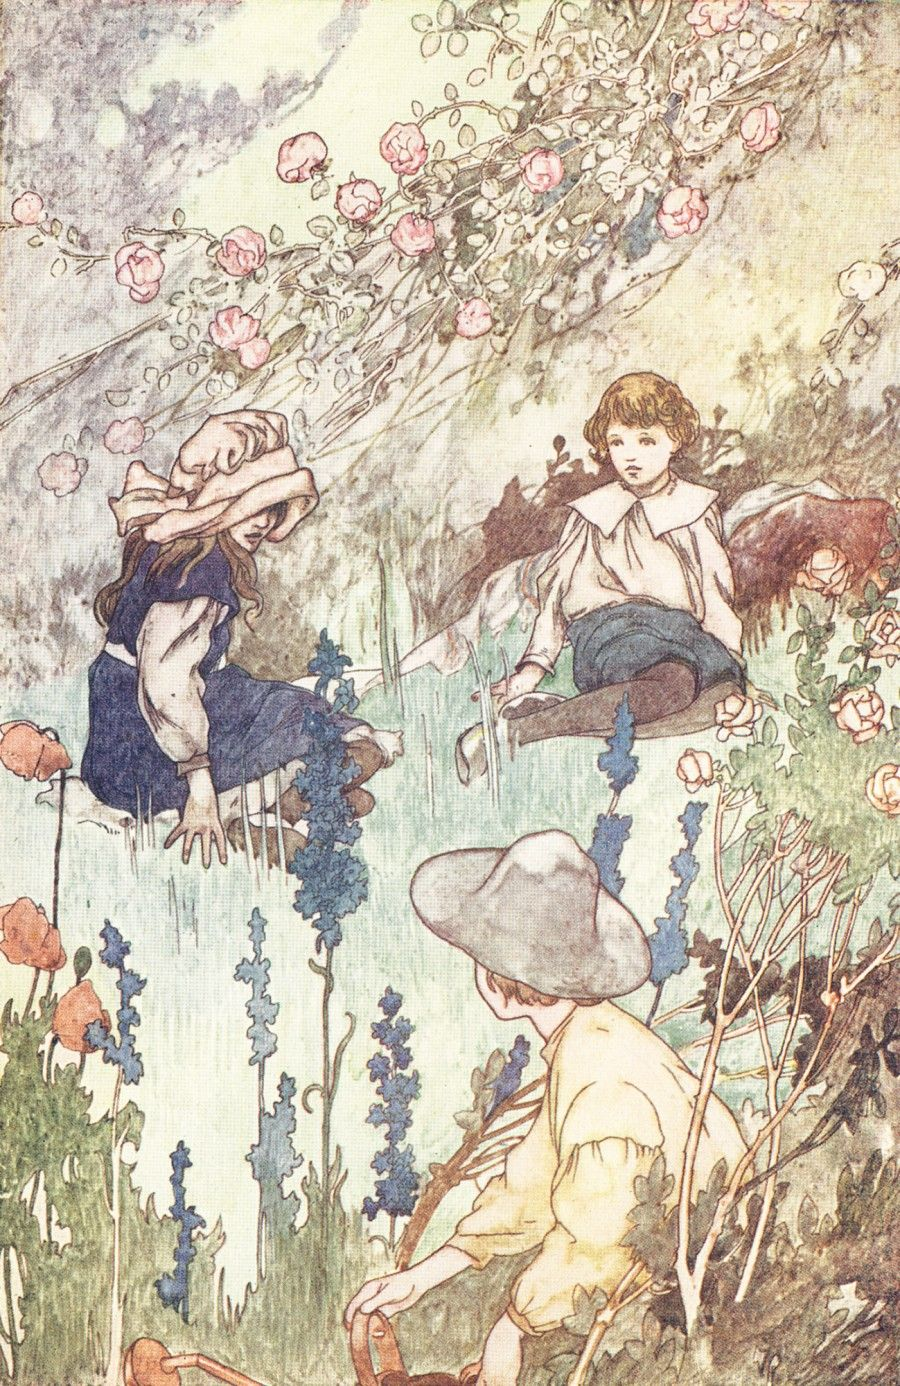 Secret Garden Kitchen Nightmares Charles Robinson Illustration For The Secret Garden Tales